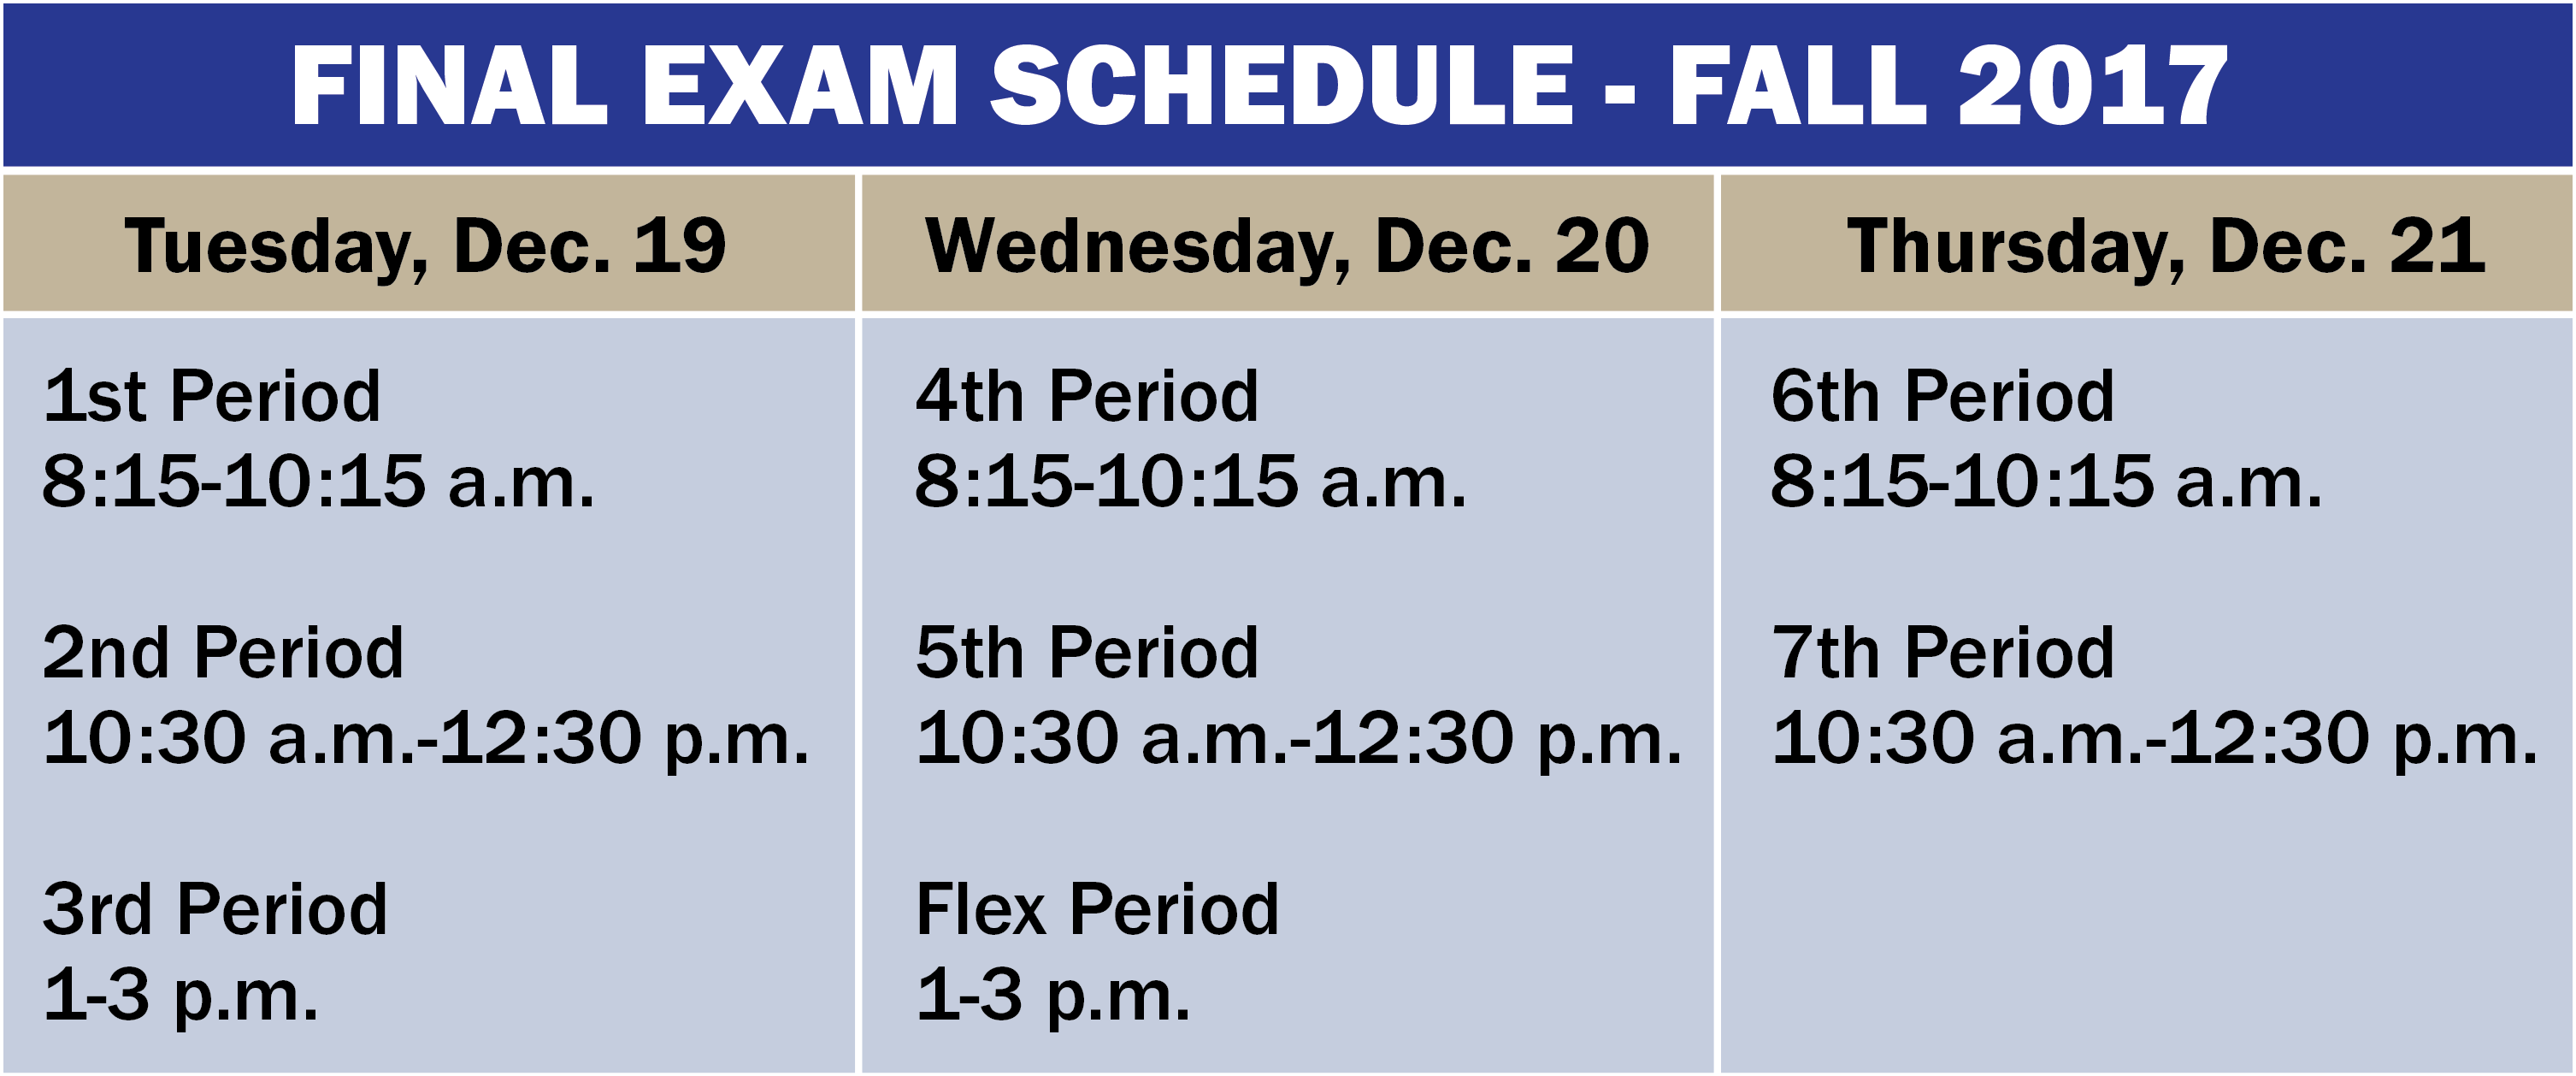 Fall 2017 Final Exam Schedule Now Available - University